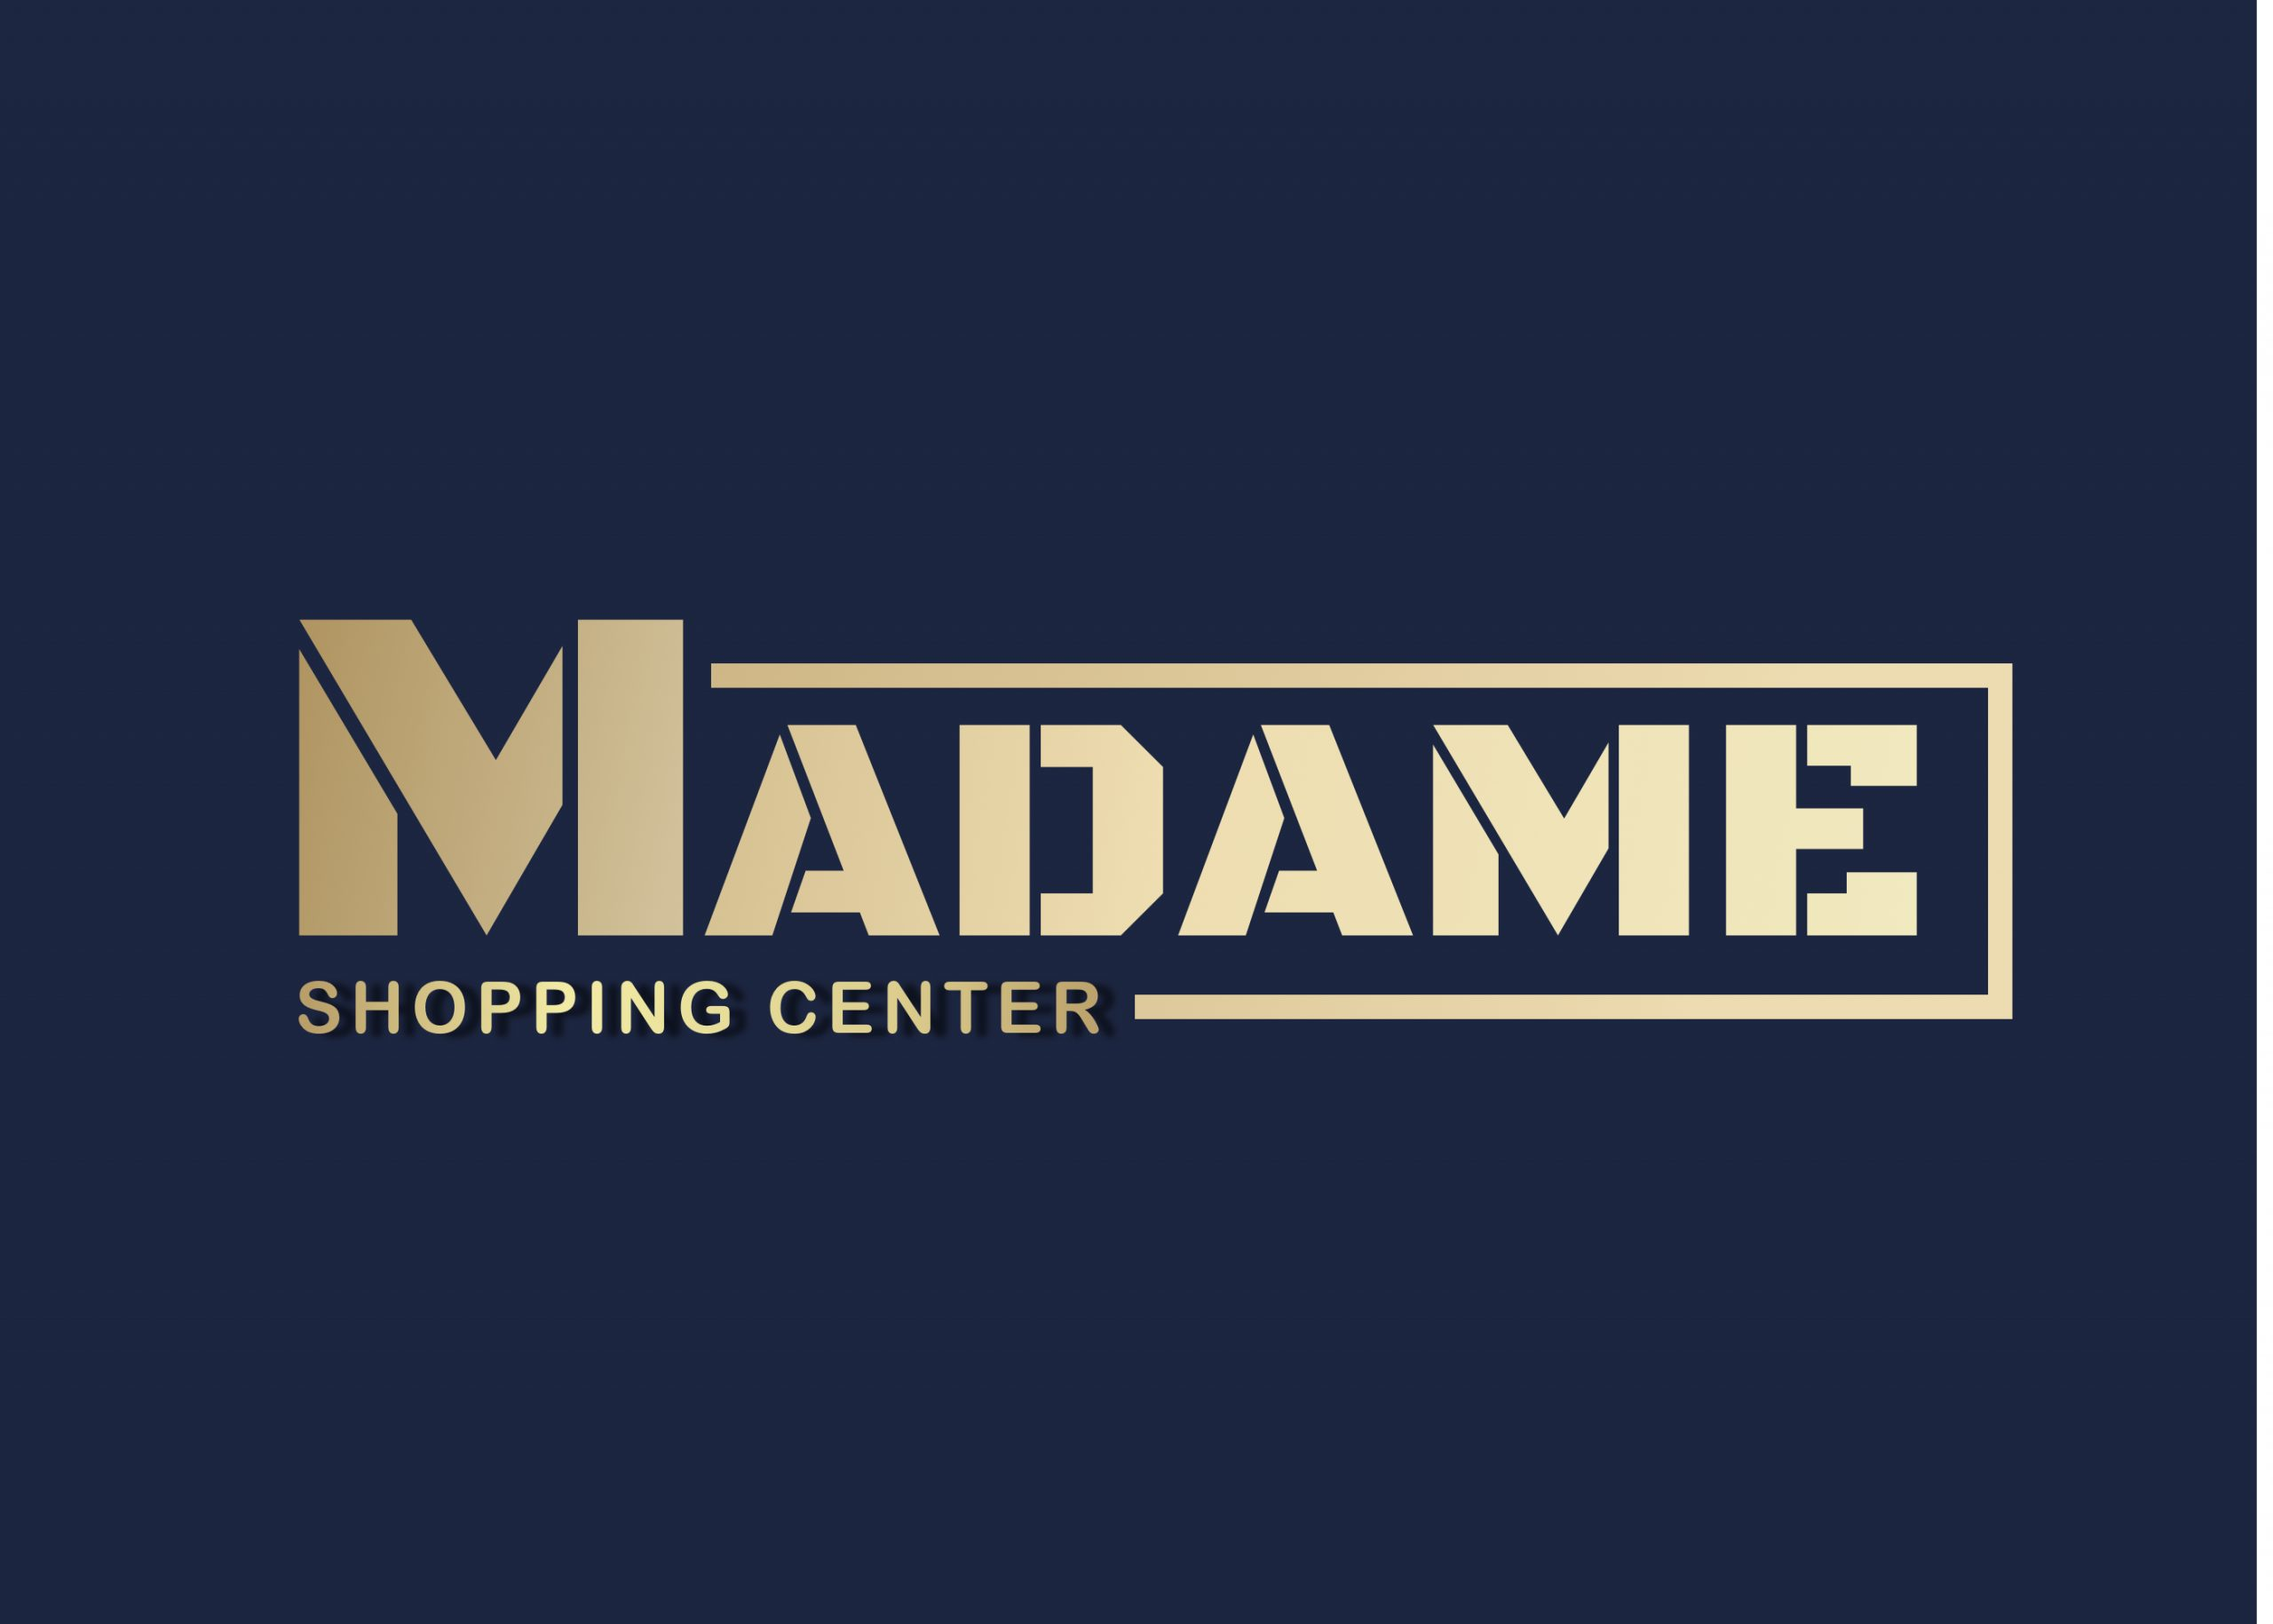 shopping_logo_camapp_logo_design_19_02_21